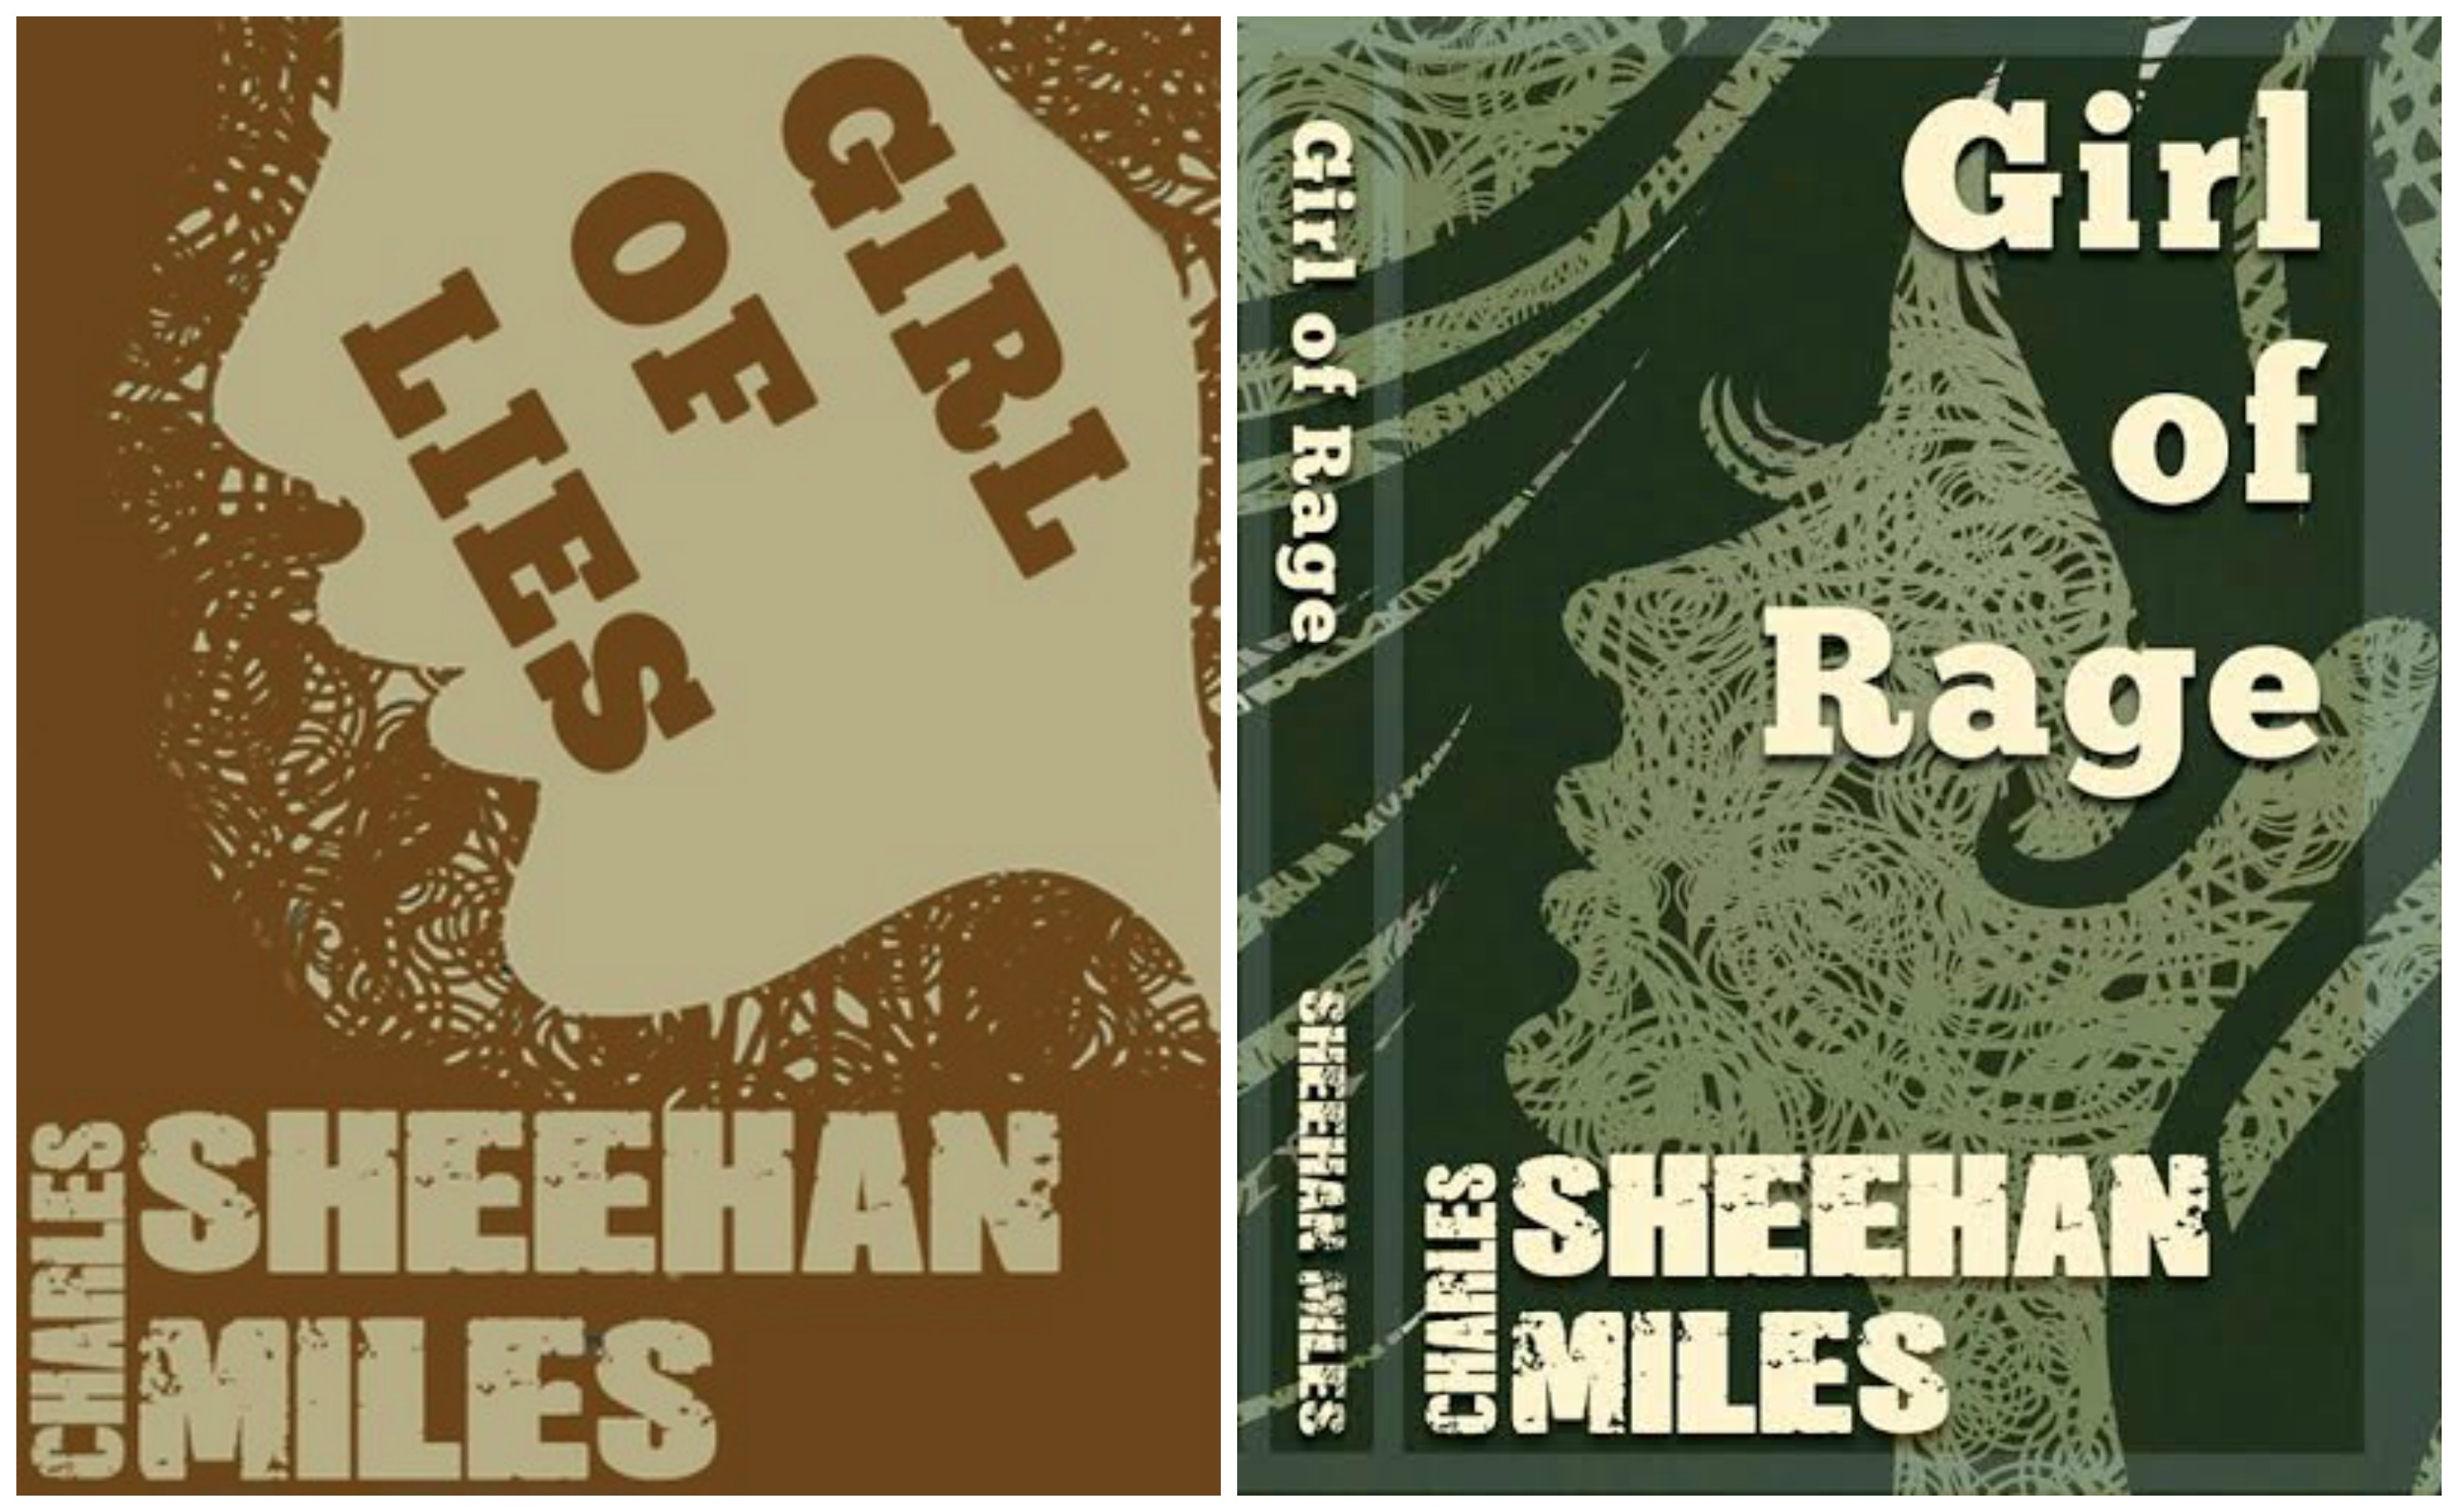 Charles Sheehan Miles Covers